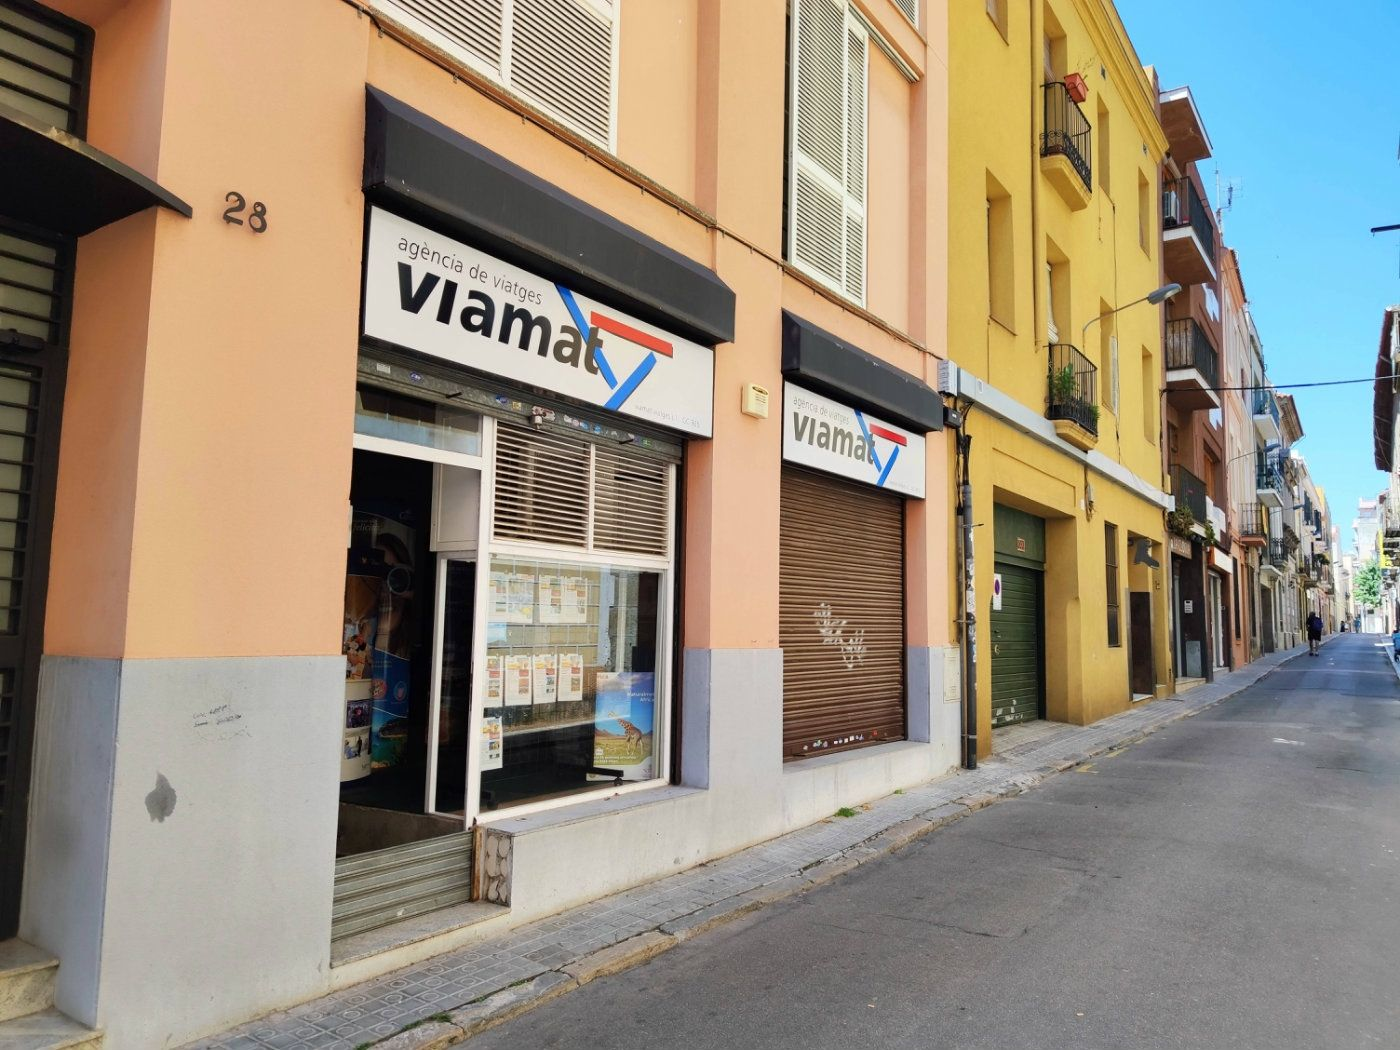 Locale commerciale  Carrer bonaire. Local con 2 vidrieras y piscina